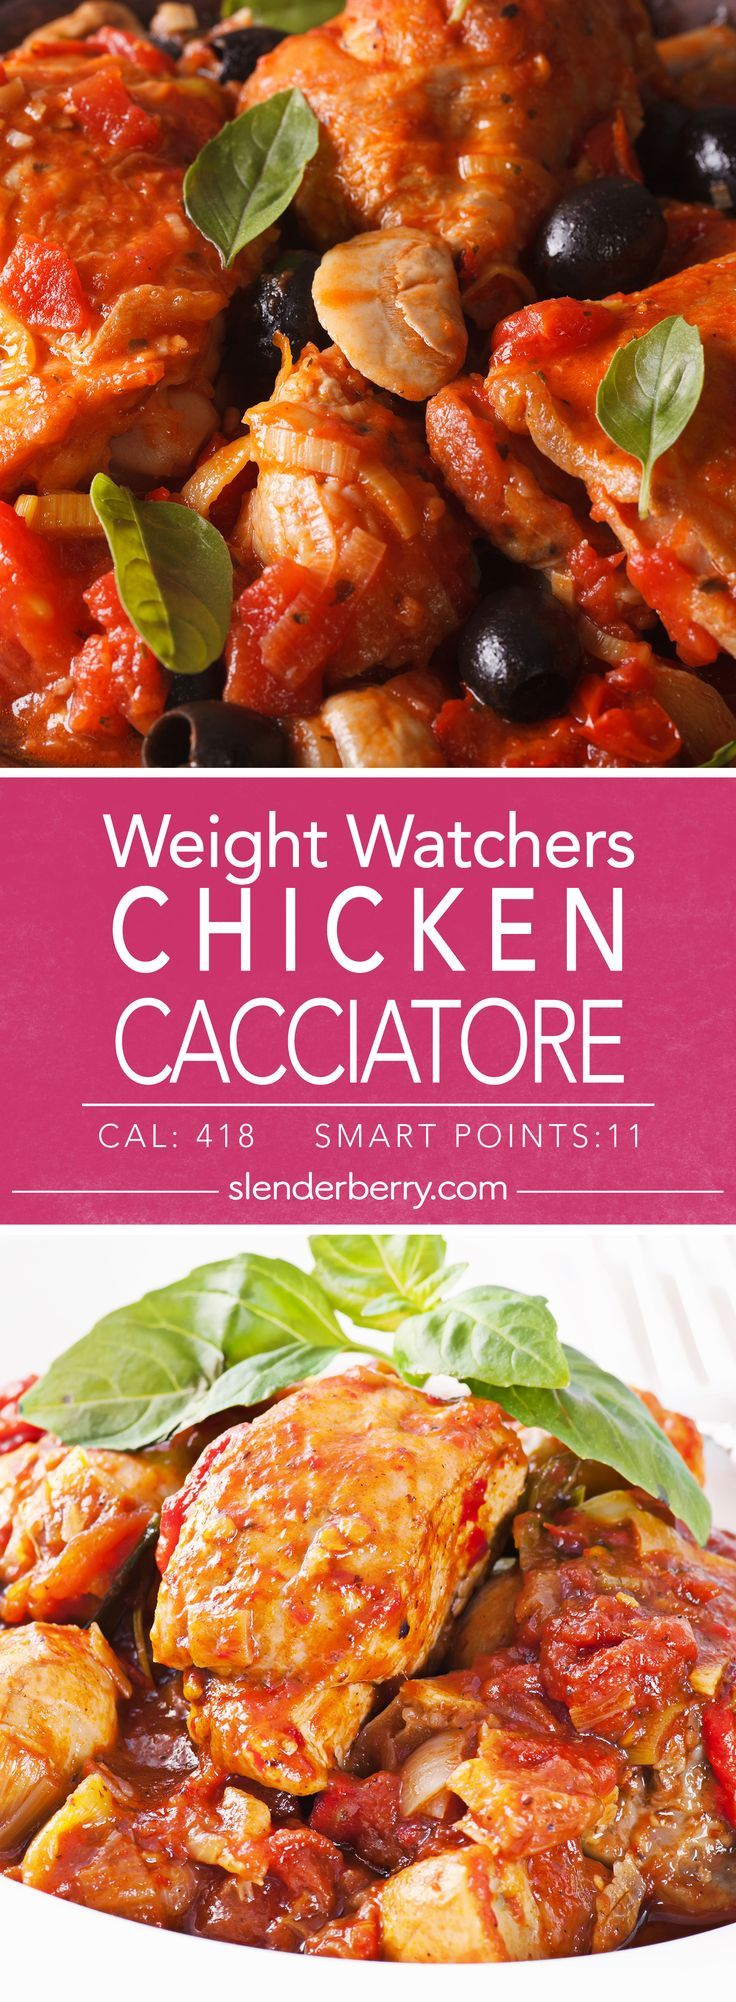 Chicken Cacciatore Recipe 2020 Chicken Cacciatore Stuffed Peppers Stewed Tomatoes